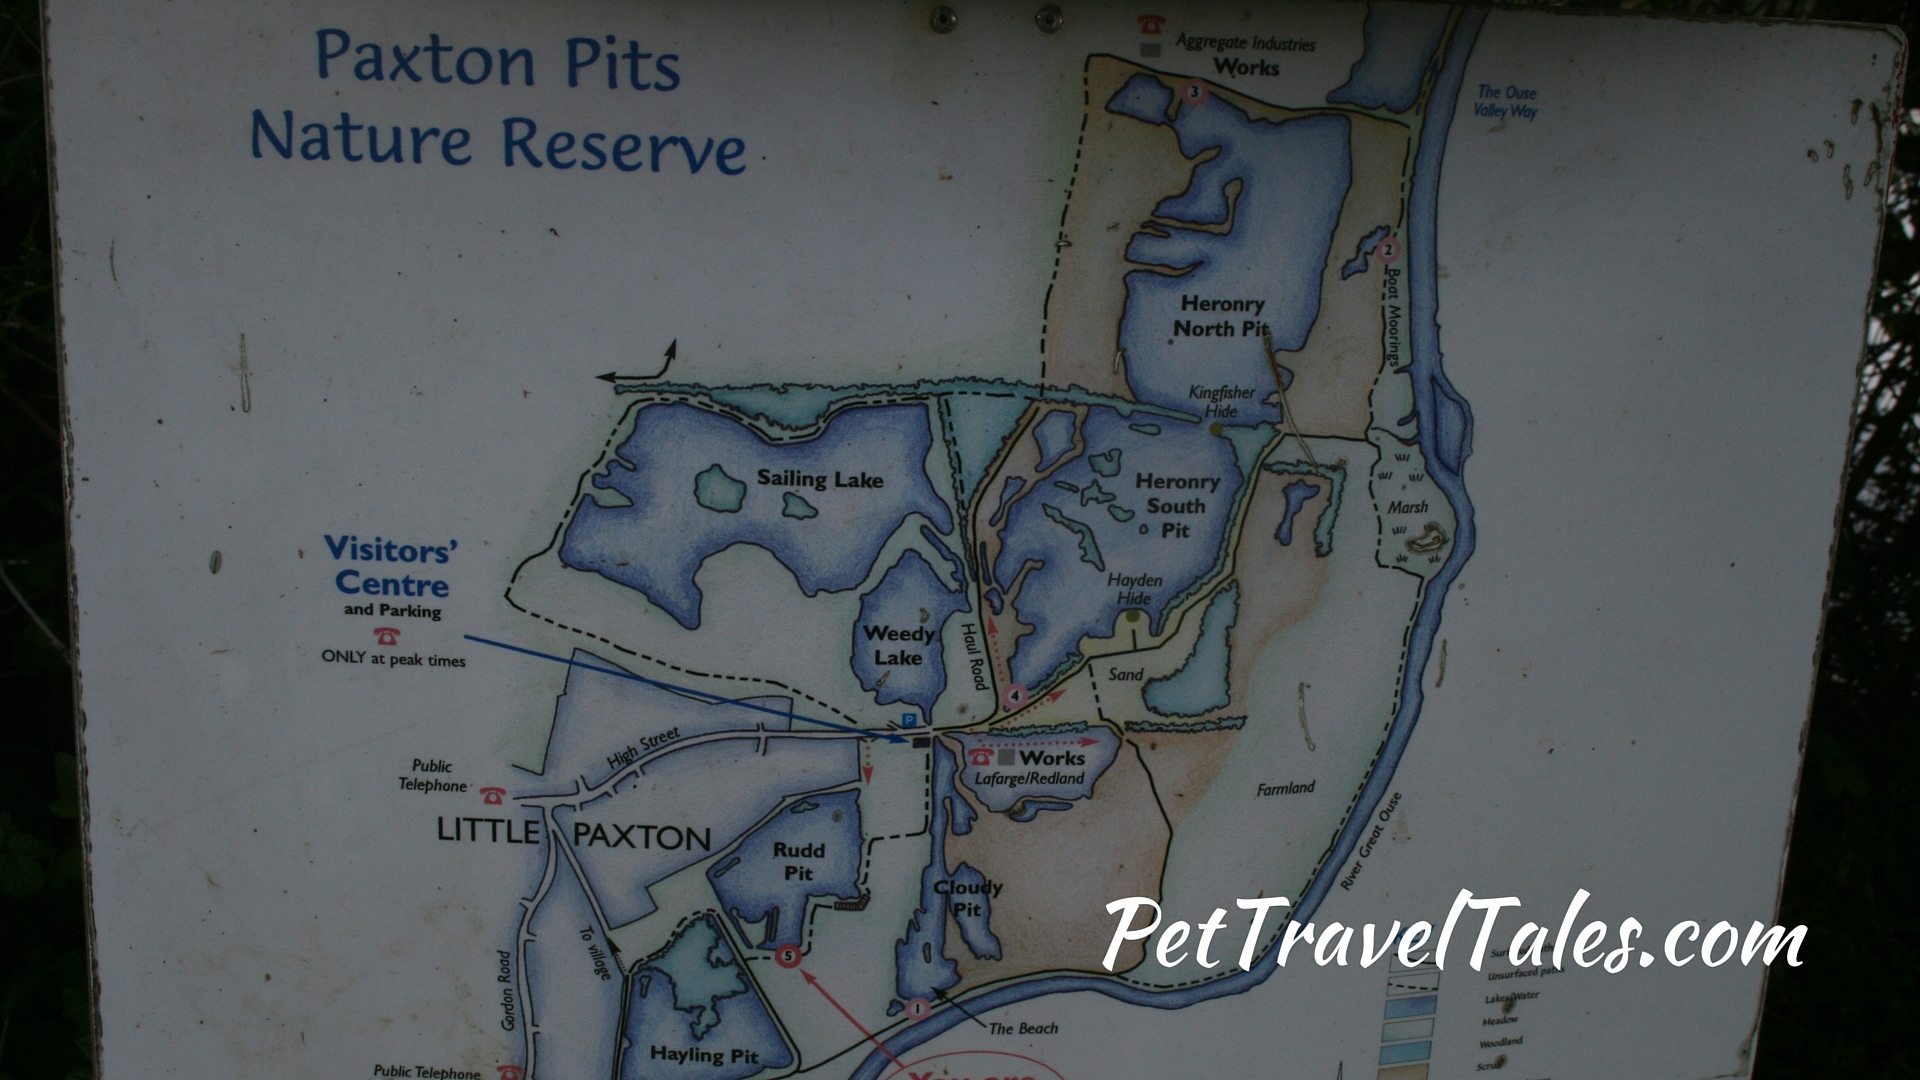 Paxton Pits Nature Reserve 3